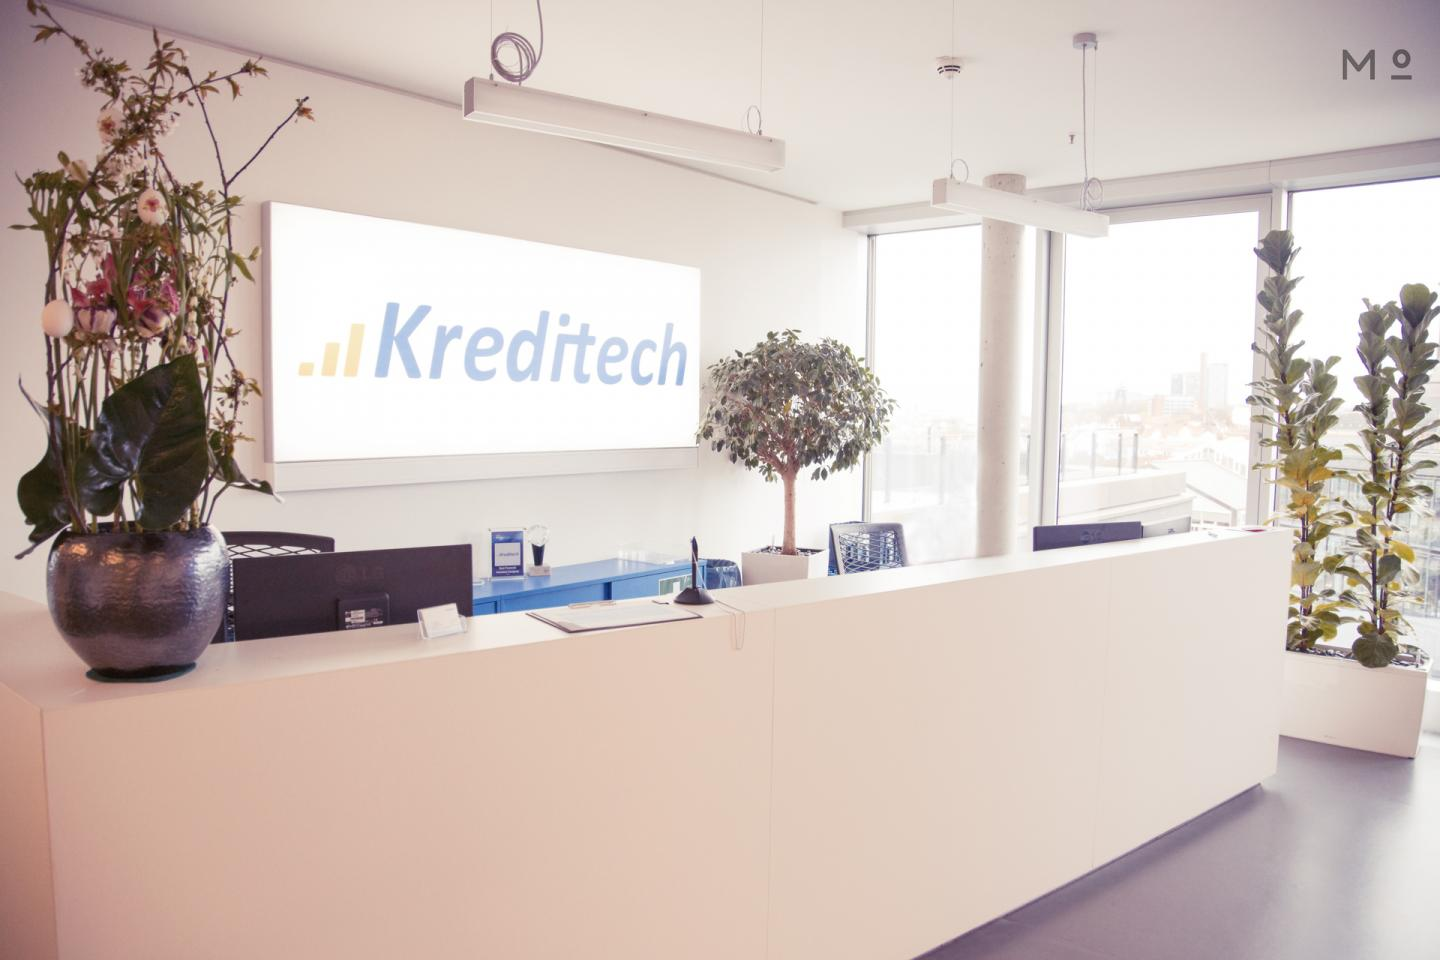 Kreditech Holding SSL Hamburg, Germany 1